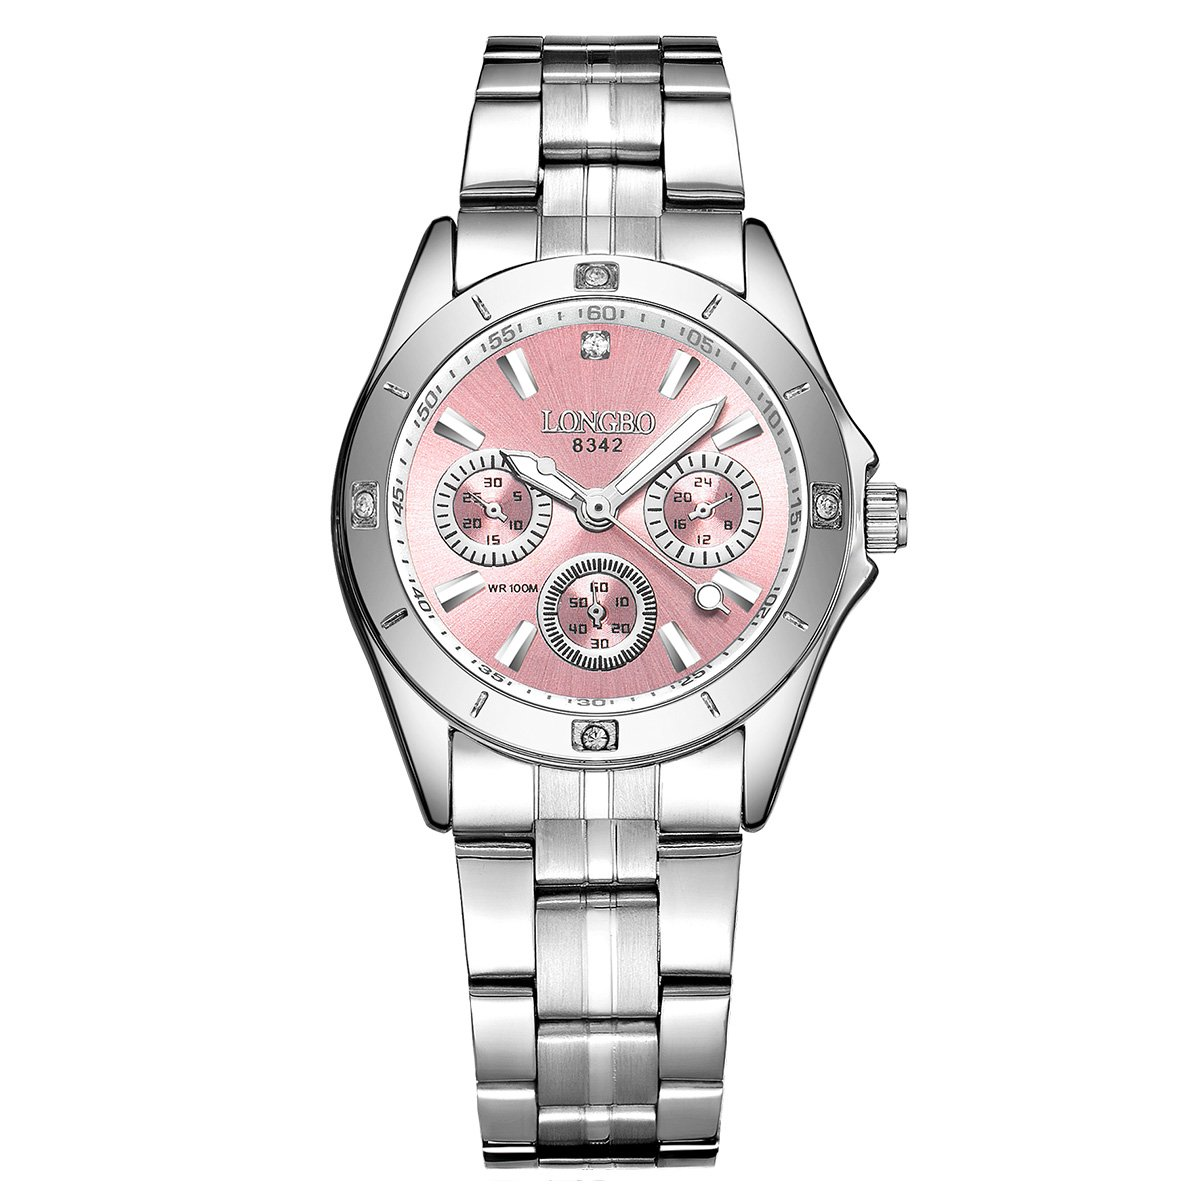 LONGBO Unique Waterproof Womens Analog Quartz Boyfriend Watch Stainless Steel Band Decorative Chrono Eyes Ladies Business Watches Luminous Hands Pink Dial Rhinestone Bracelet Wristwatch ¡­